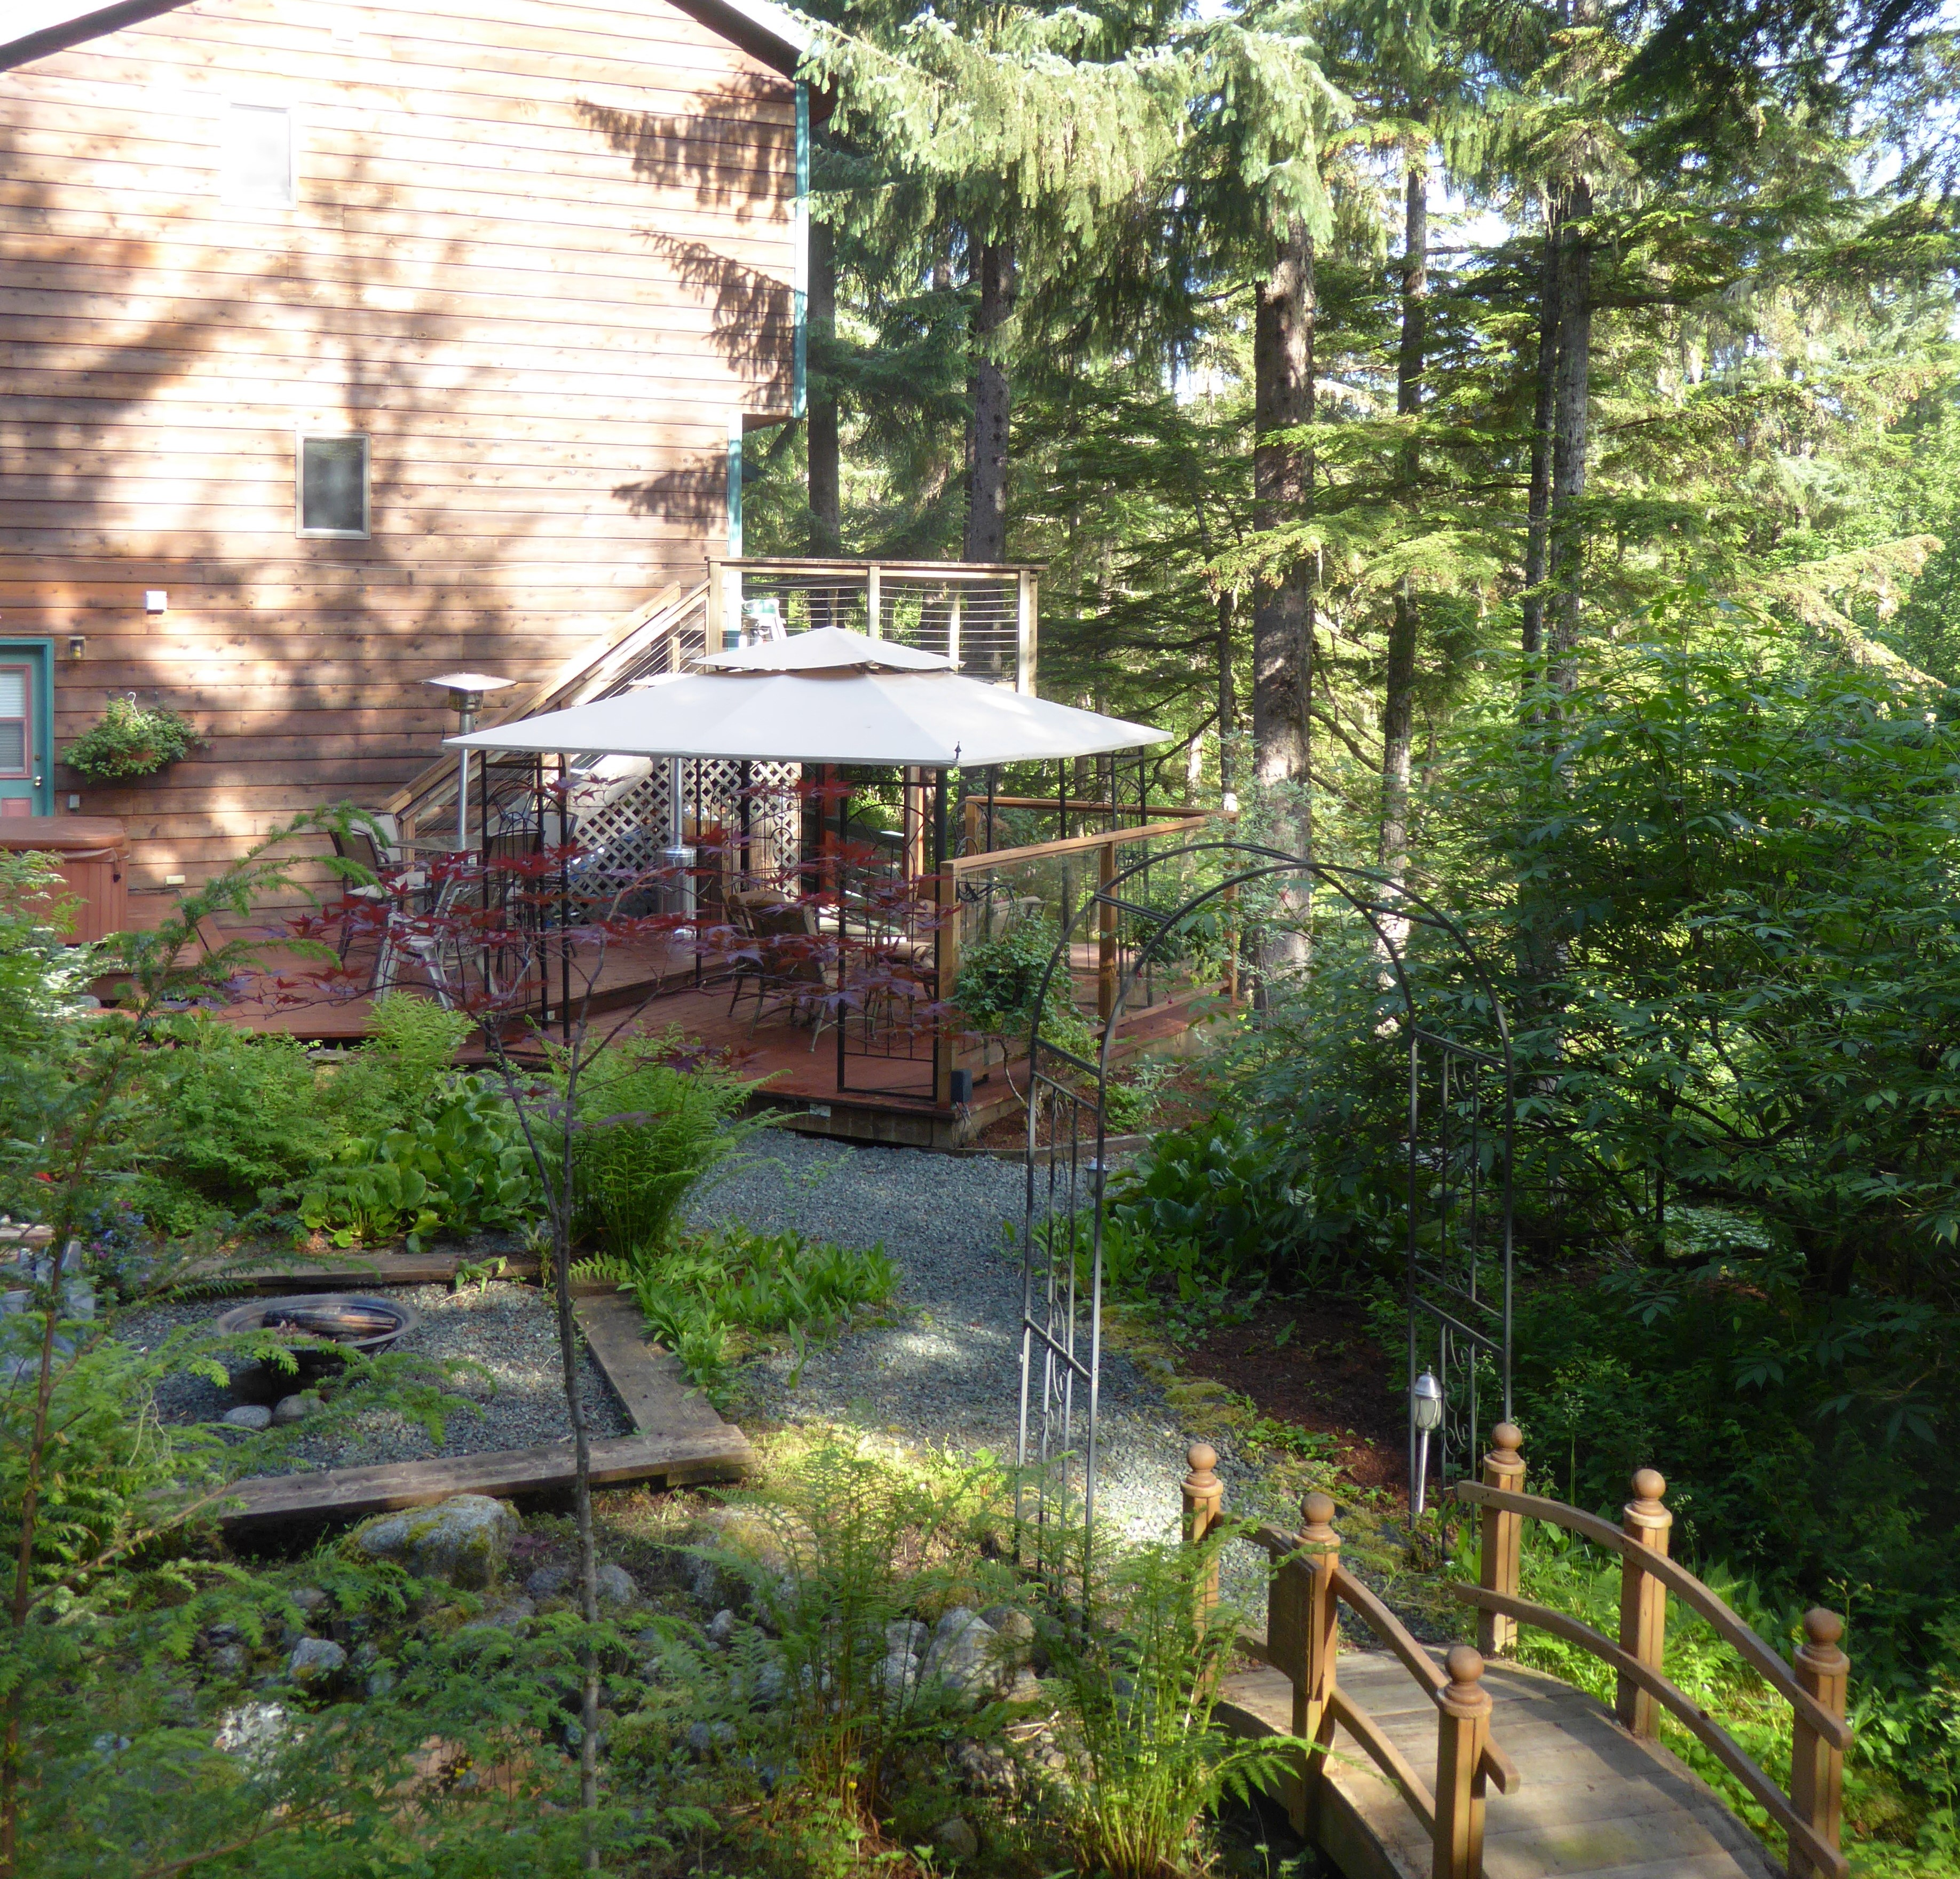 Photo of the lower gazebo from the top of the waterfall at Pearson's Pond Luxury Inn and Adventure Spa in Juneau, Alaska